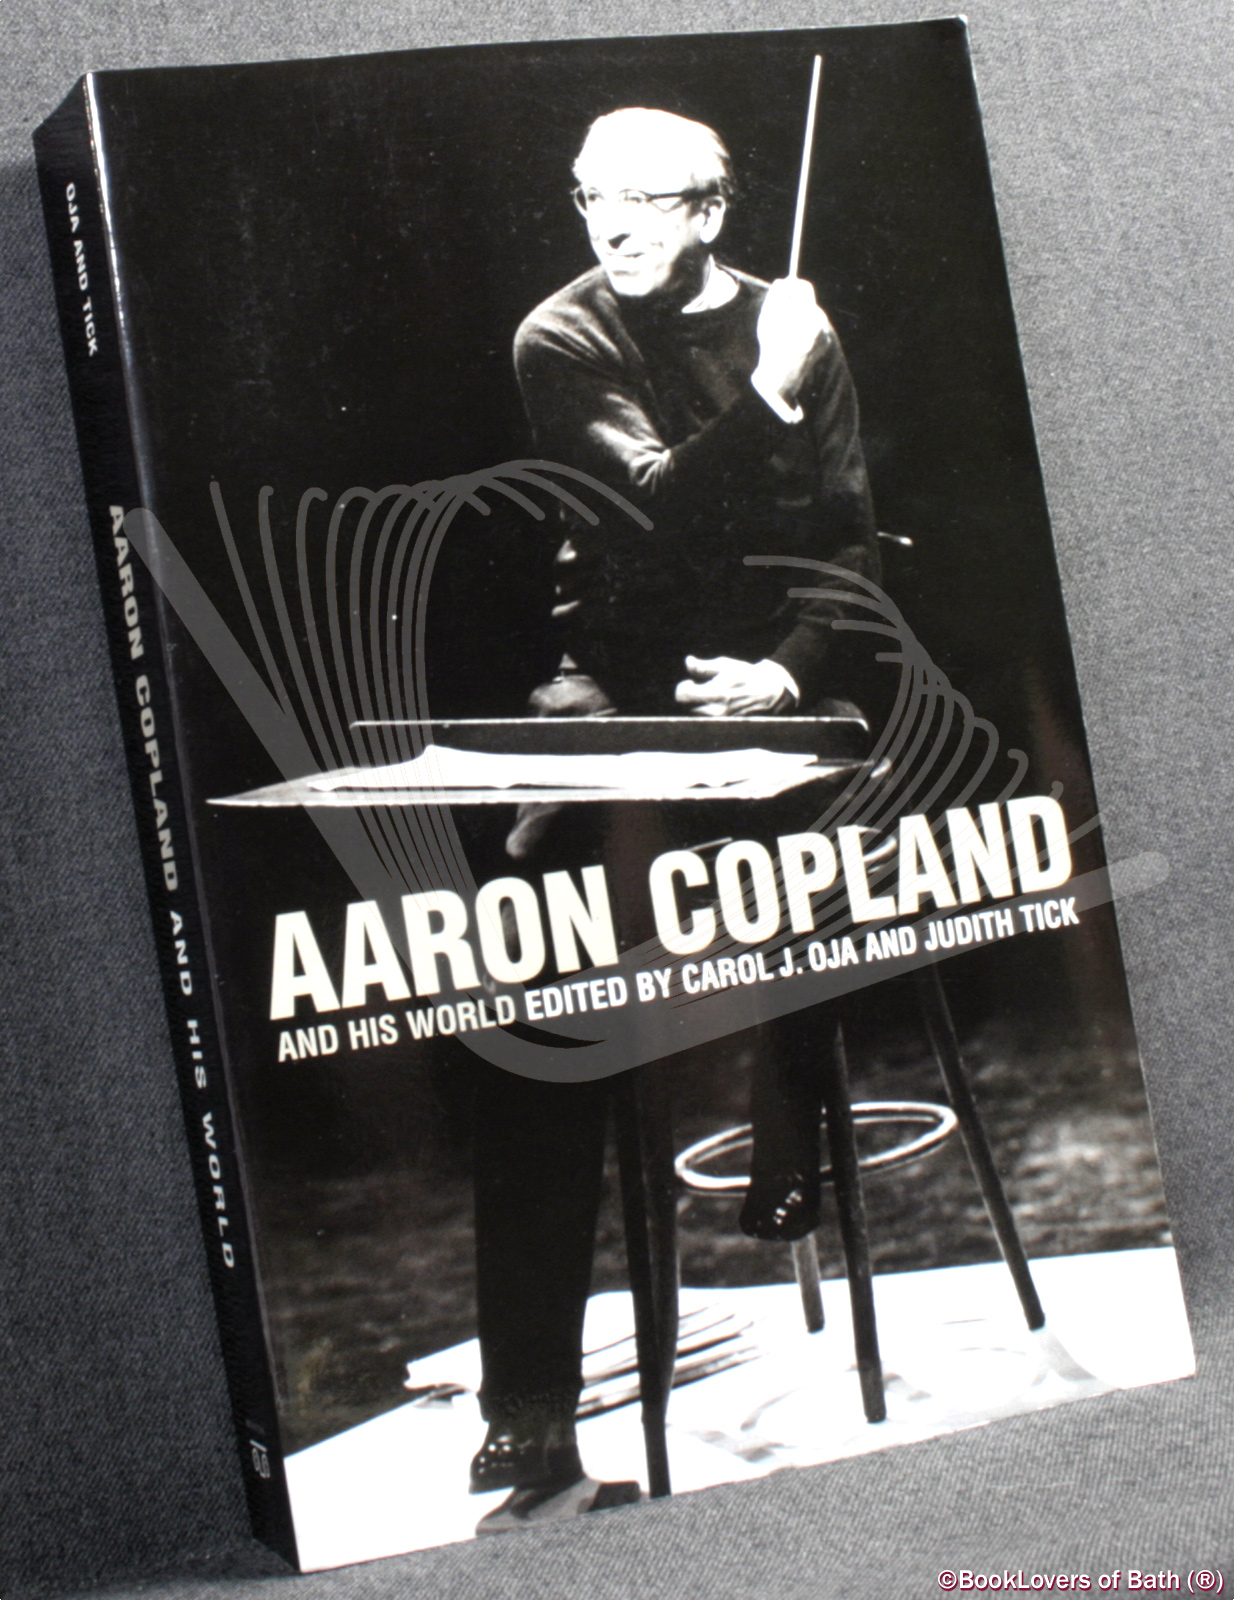 Aaron Copland and His World - Edited by Carol J. Oja & Judith Tick